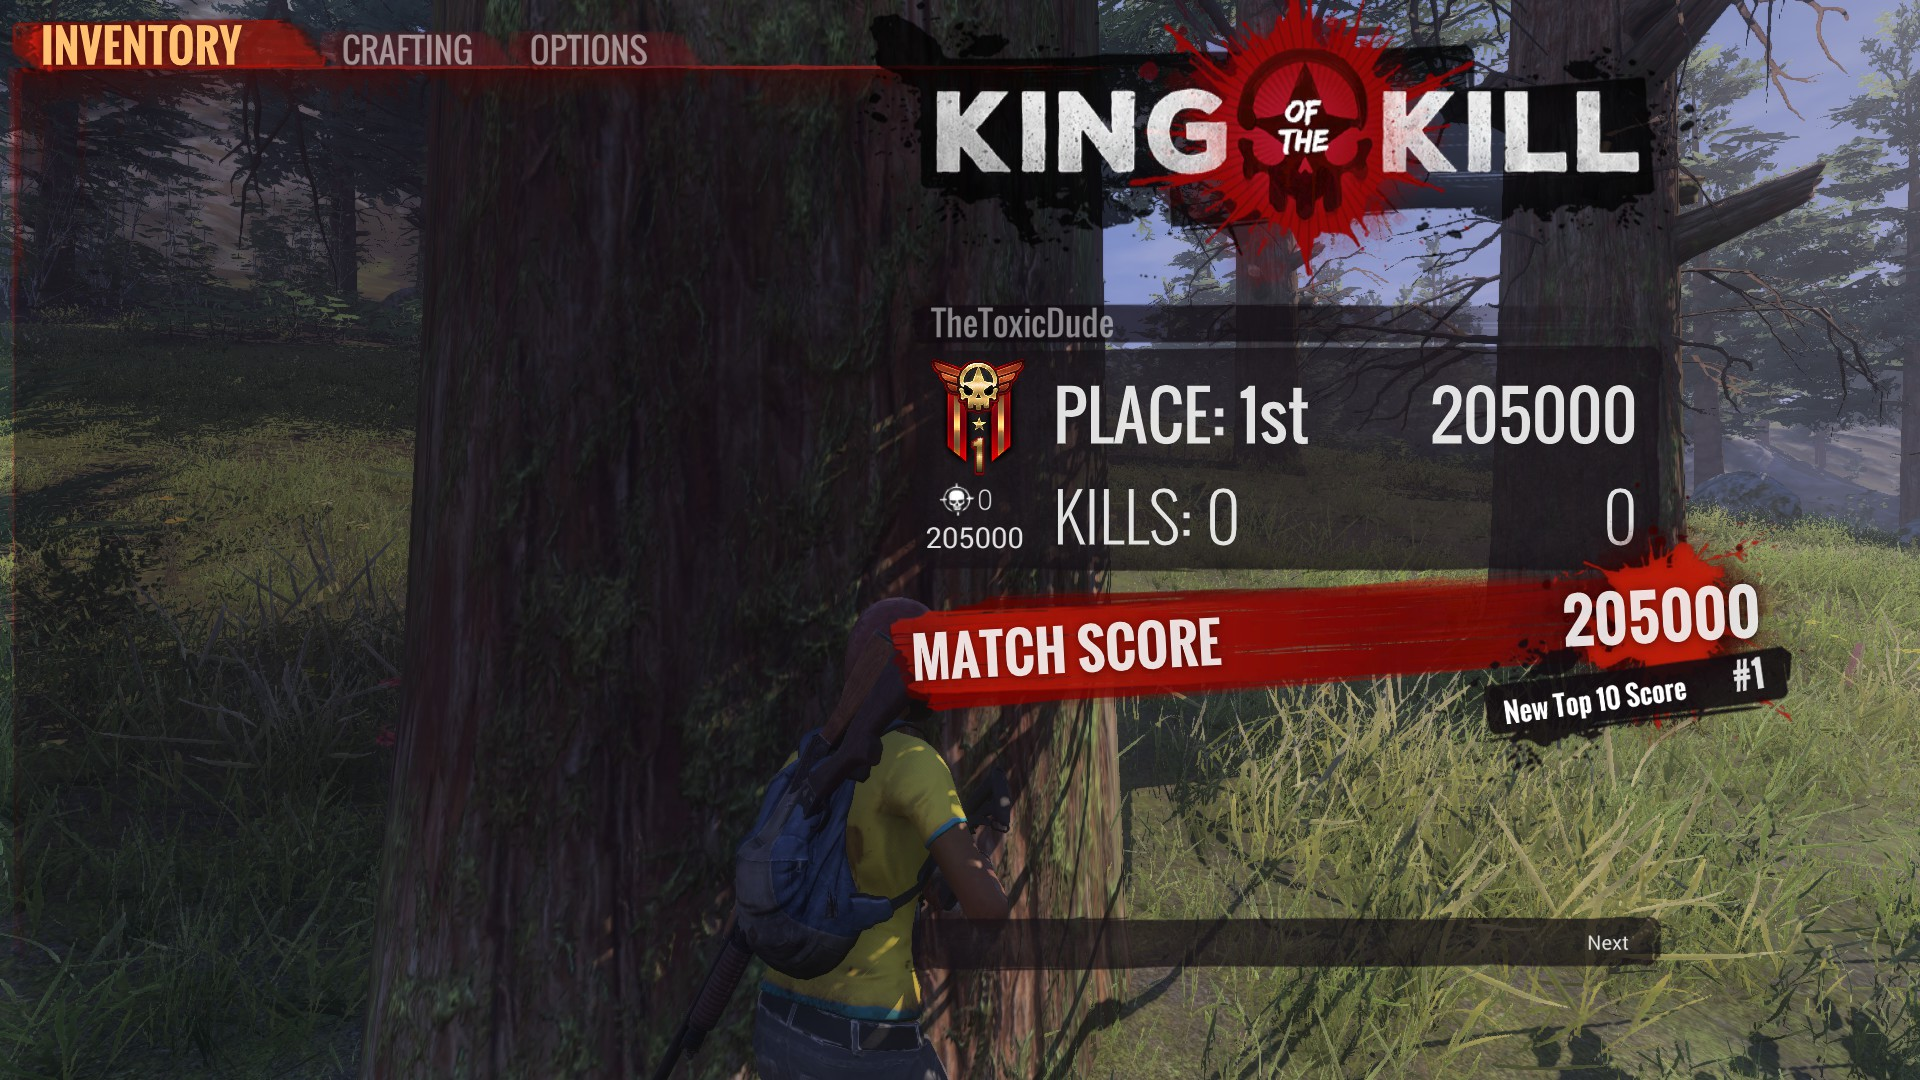 Soo I wanted to try h1z1 kotk again after a while   : kotk